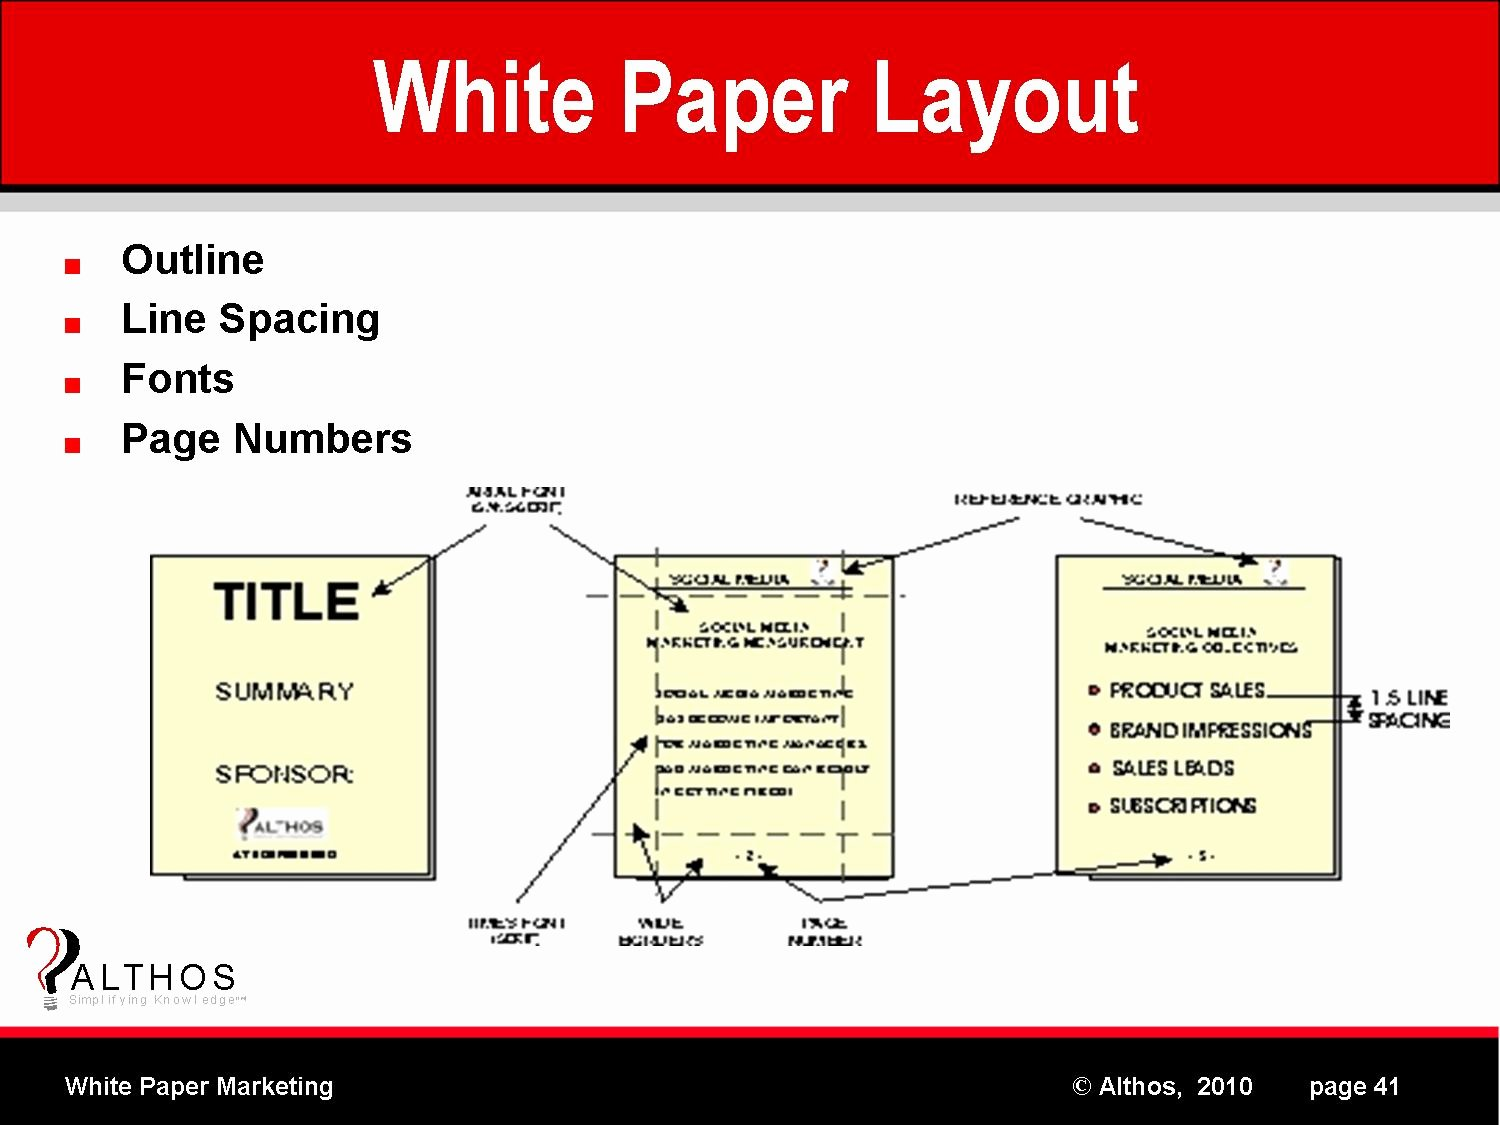 White Paper Outline Template Best Of White Paper Marketing